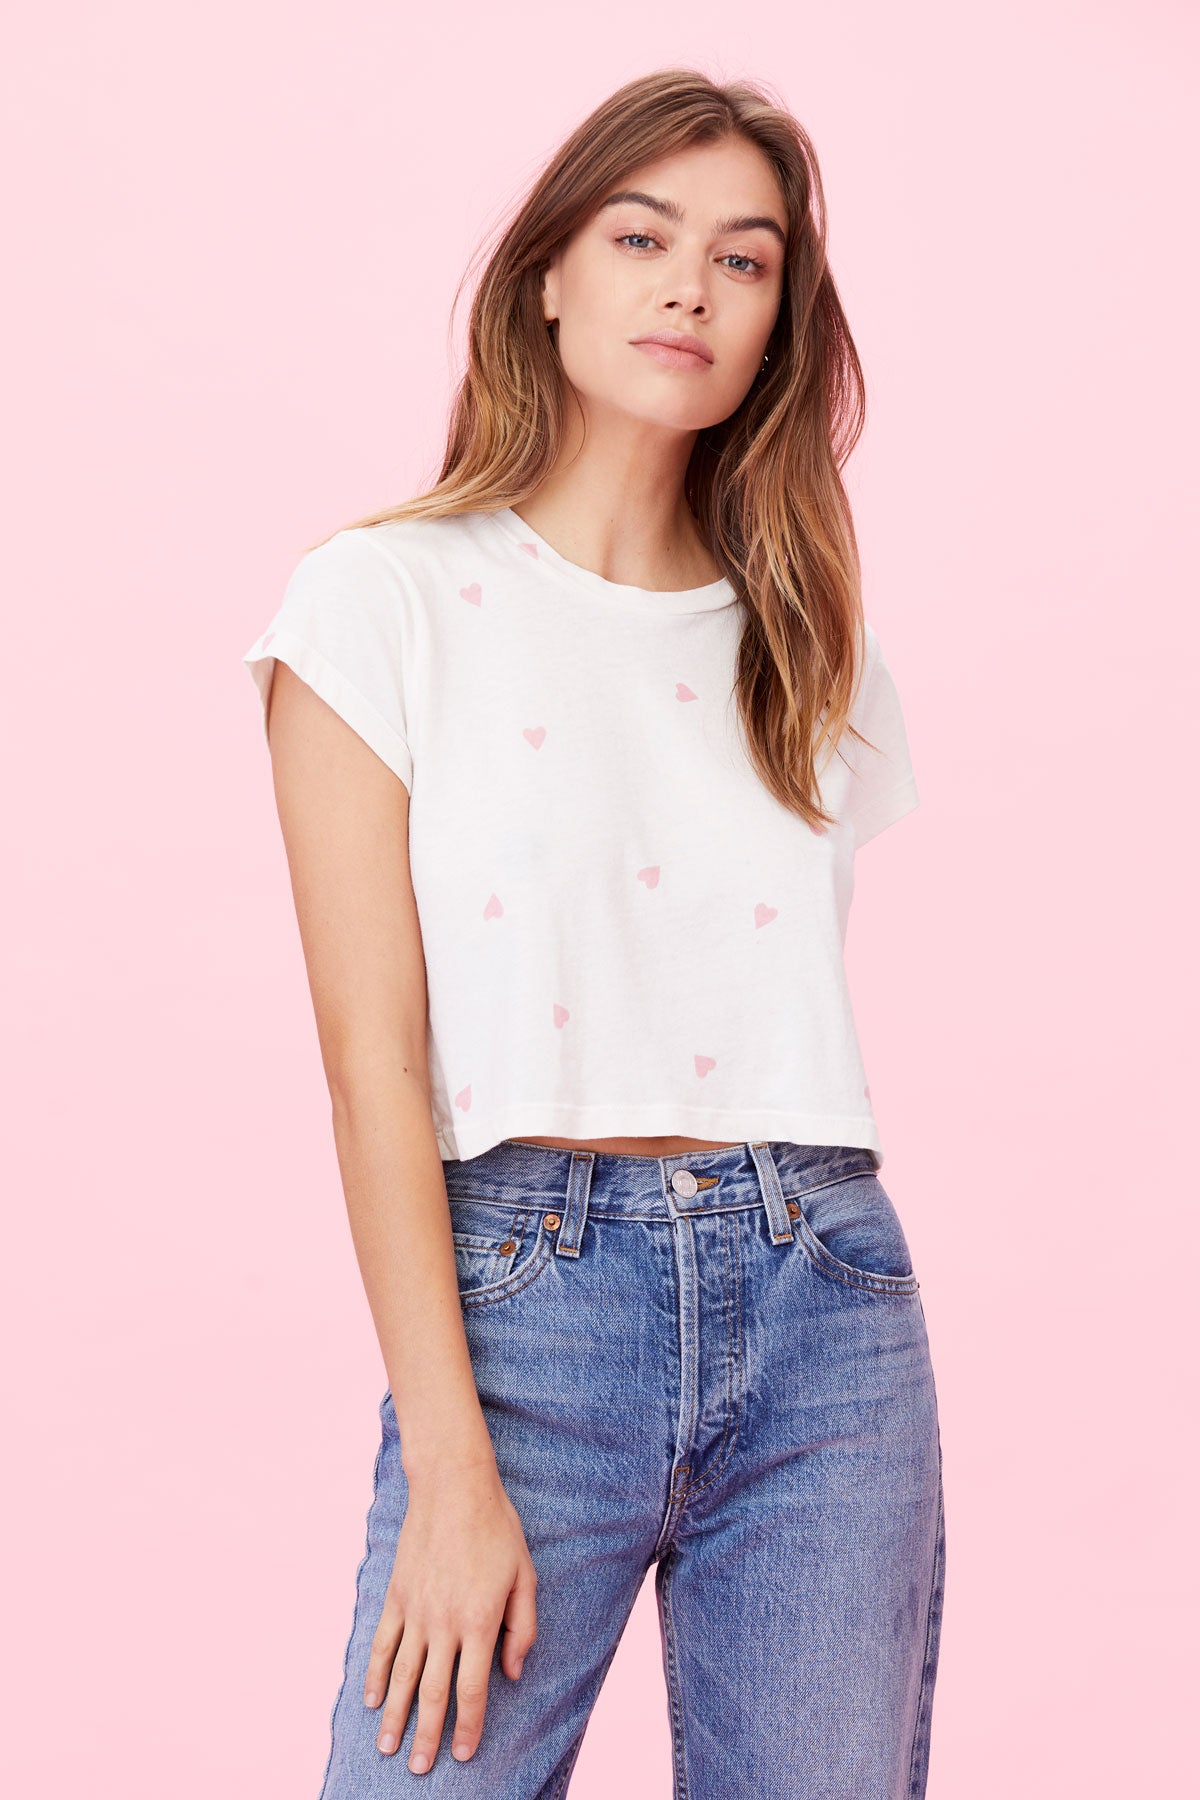 LNA Hearts Crew Cropped Tee - White with pink hearts